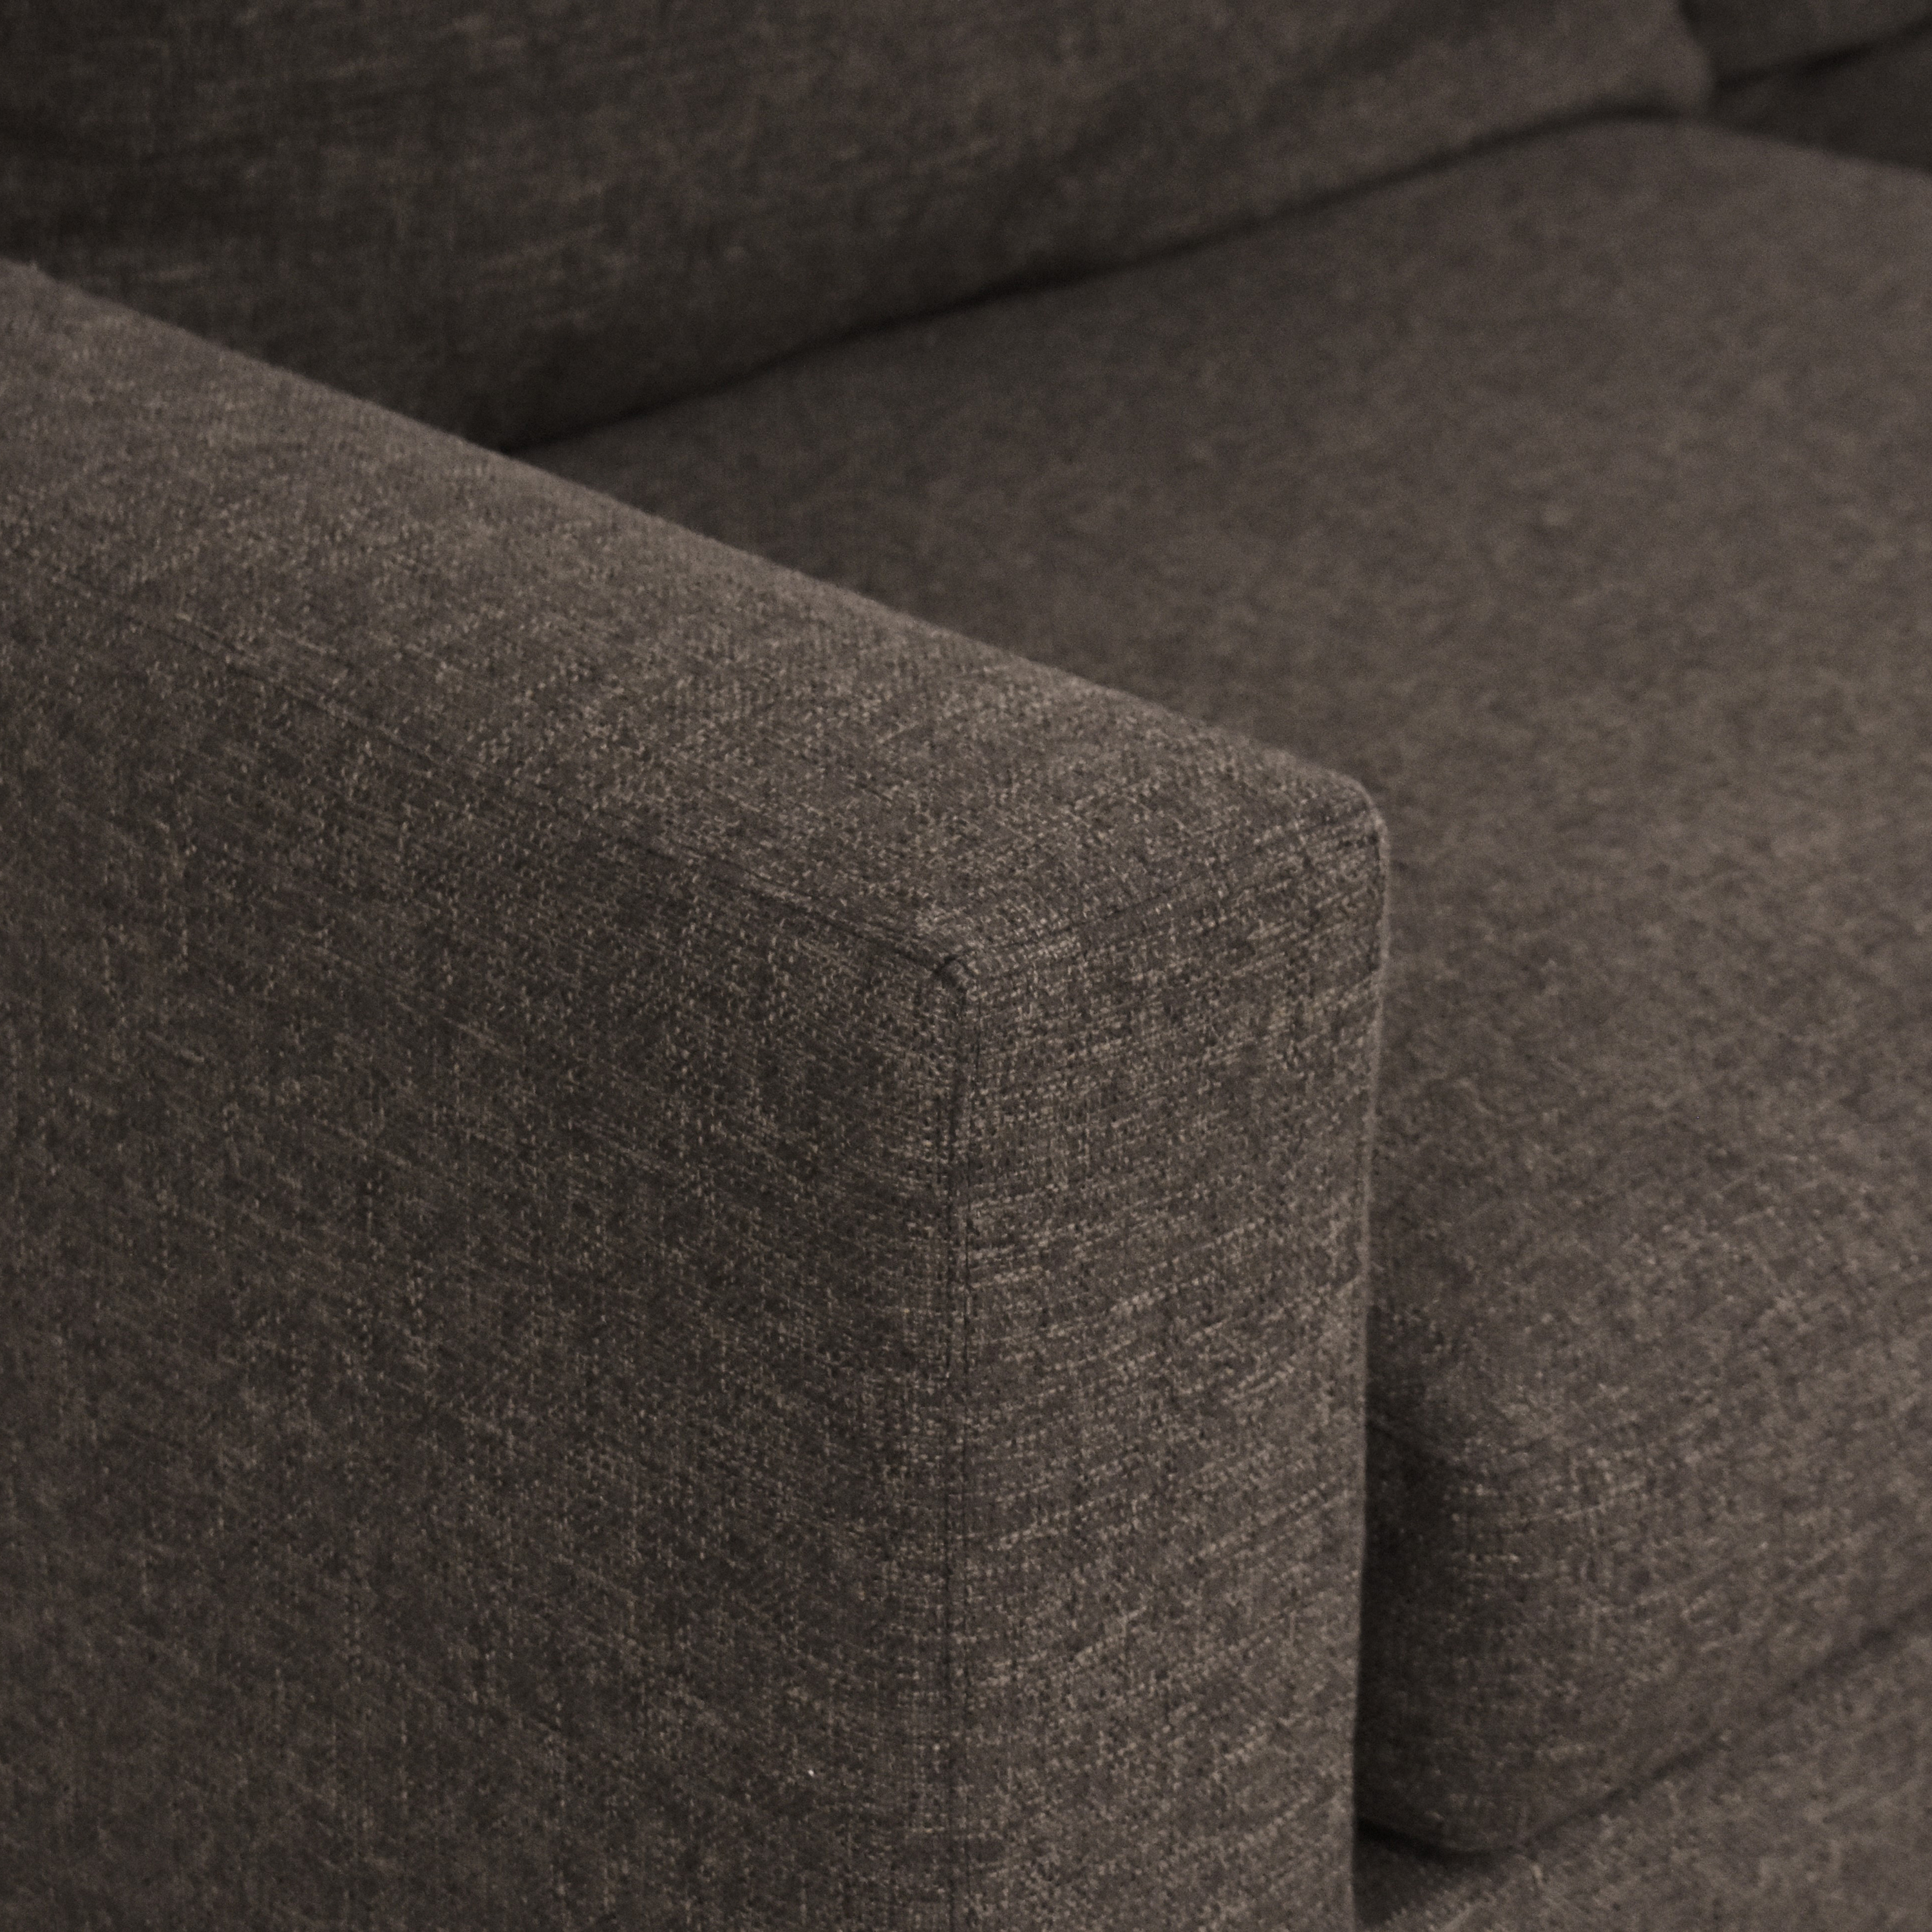 buy Crate & Barrel Axis Two Cushion Sofa Crate & Barrel Sofas